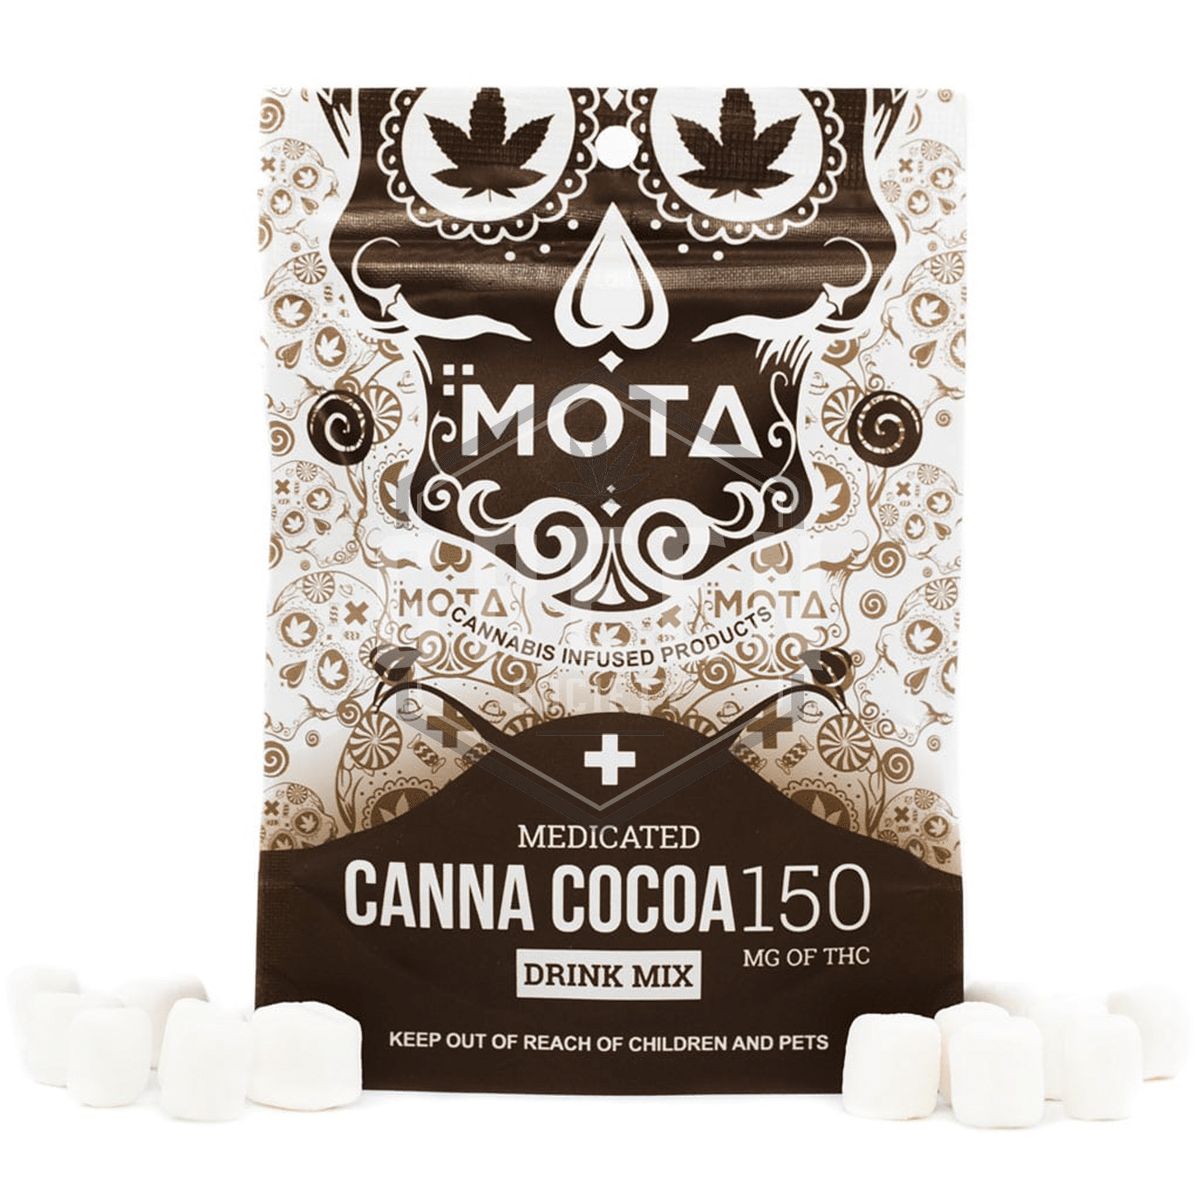 Canna Cocoa by MOTA Cannabis by Green Society - Image © 2018 Green Society. All Rights Reserved.